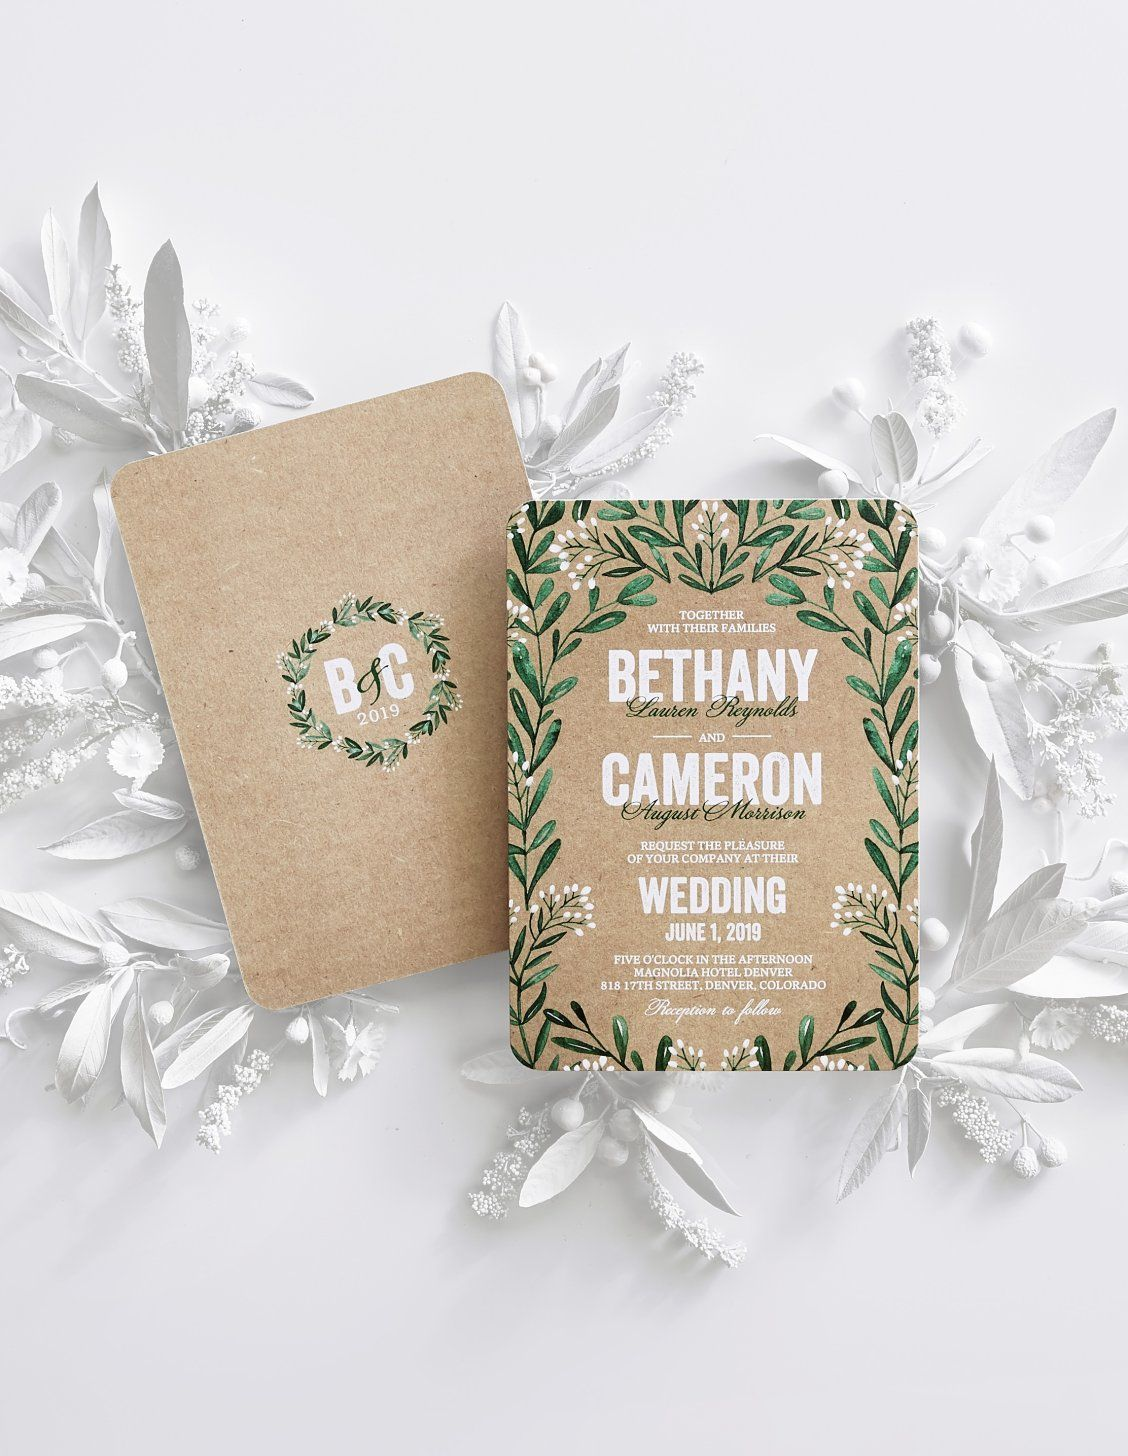 The Wedding Shop by Shutterfly, the destination for your